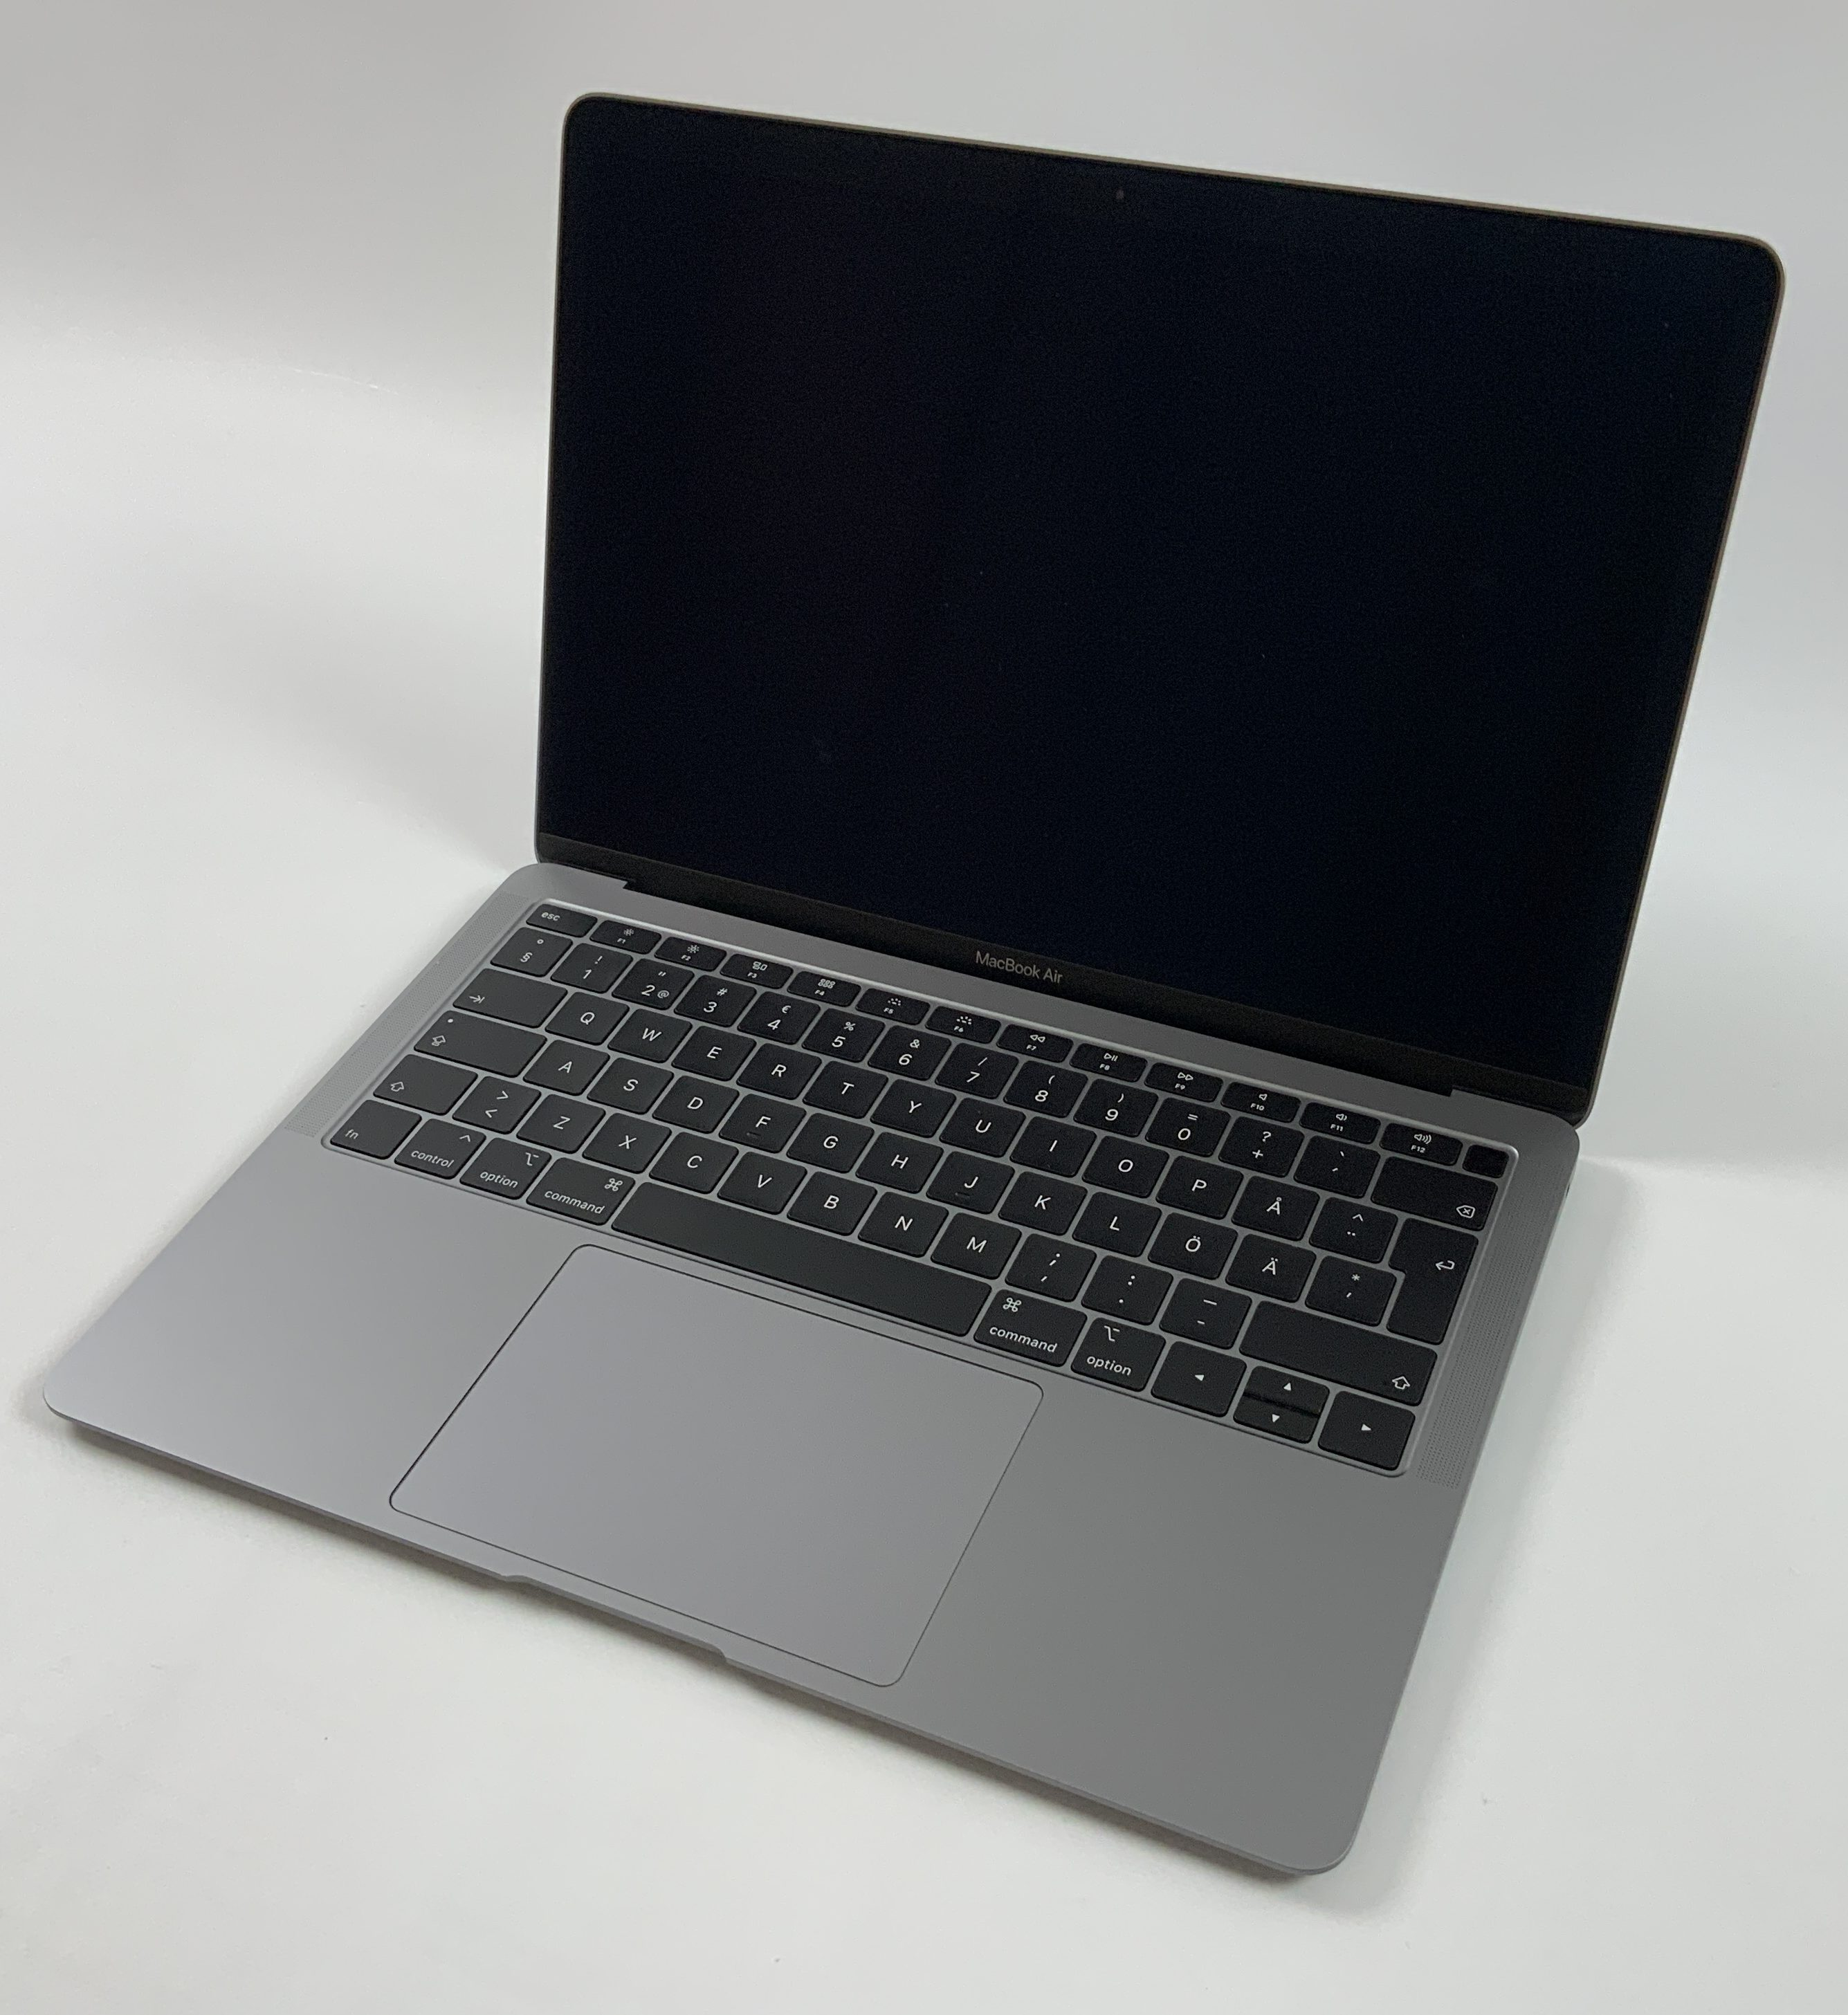 "MacBook Air 13"" Late 2018 (Intel Core i5 1.6 GHz 16 GB RAM 512 GB SSD), Space Gray, Intel Core i5 1.6 GHz, 16 GB RAM, 512 GB SSD, bild 1"